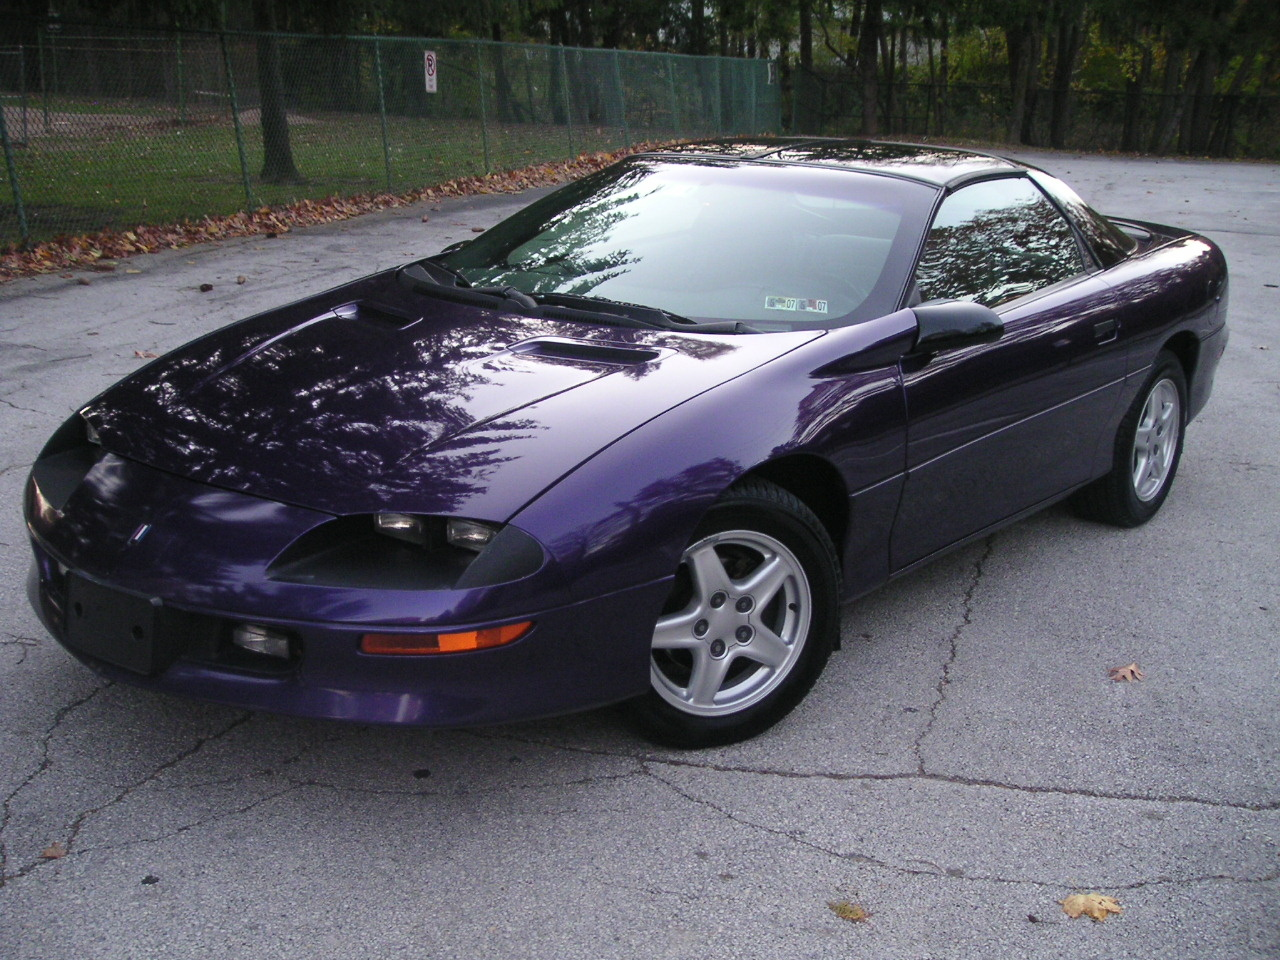 1997 chevrolet camaro overview cargurus rh cargurus com 97 Camaro RS Problems 97 Camaro RS V6 Engine